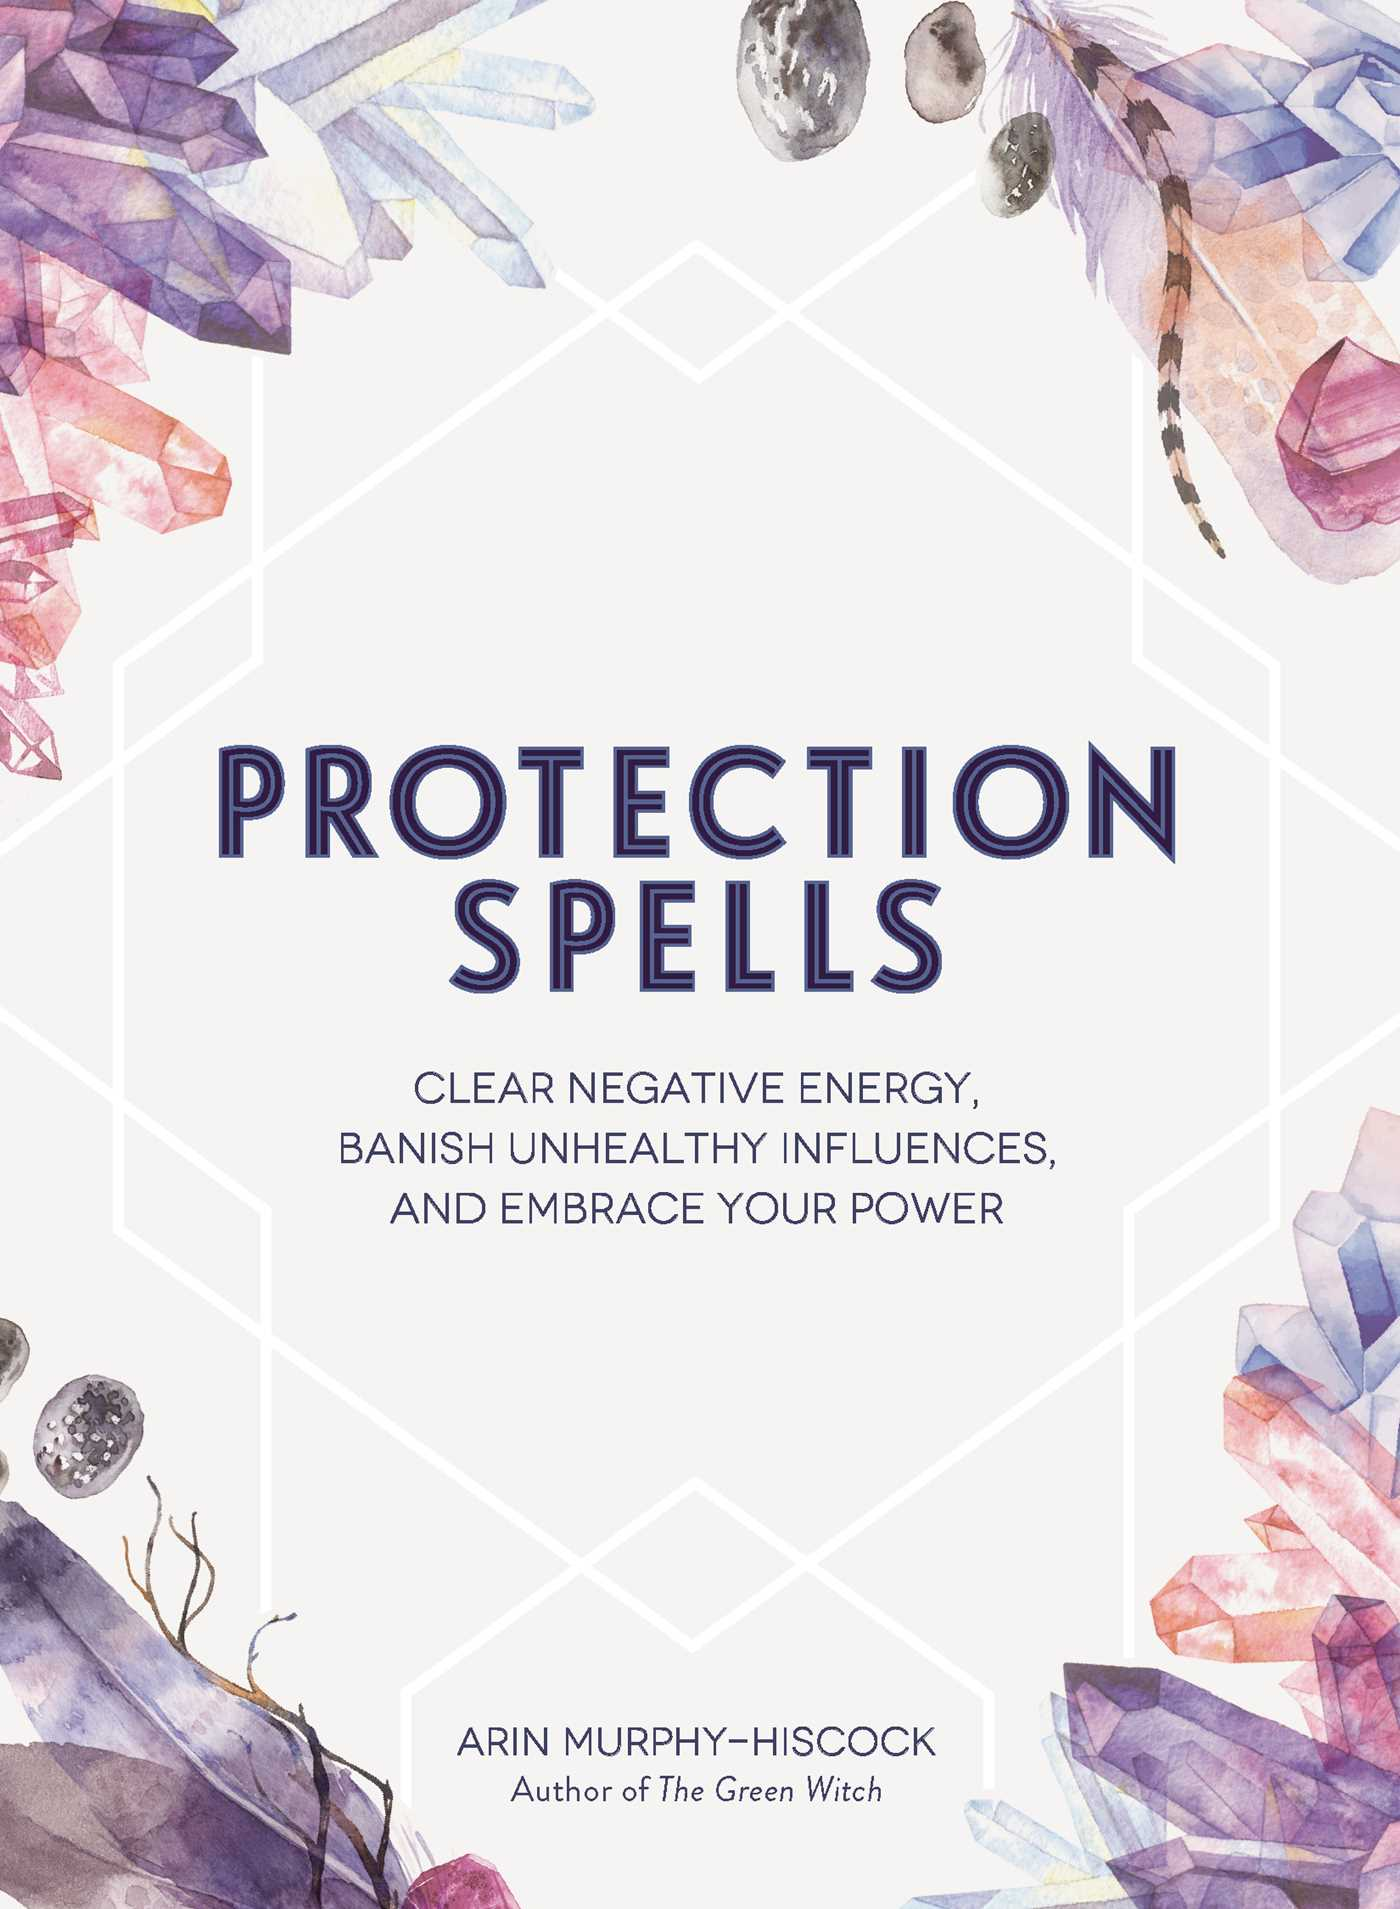 protection-spells-9781507208328_hr.jpg